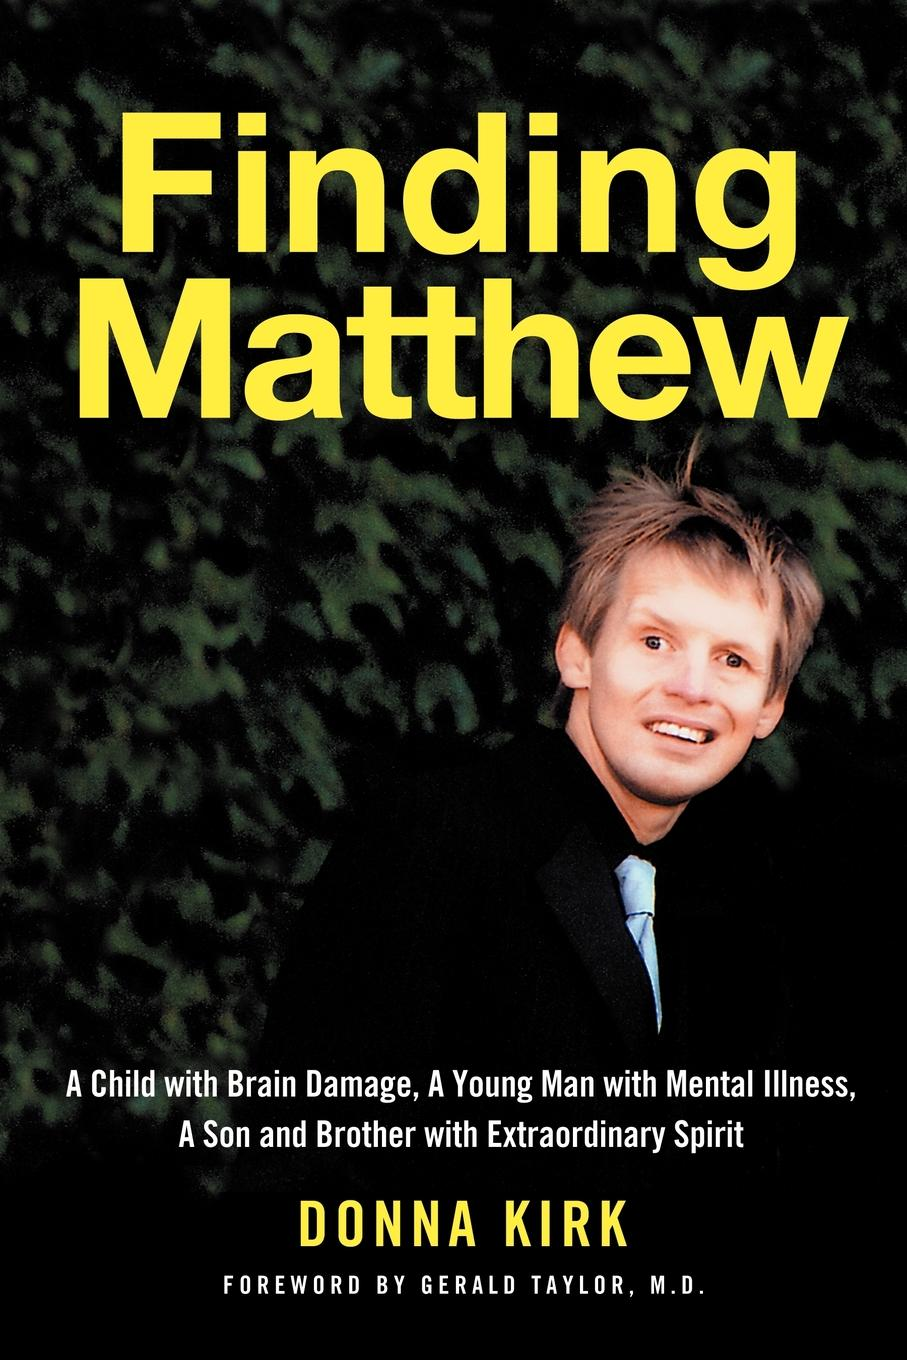 Finding Matthew: A Child with Brain Damage, a Young Man with Mental Illness, a Son and Brother with Extraordinary Spirit By: Donna Kirk